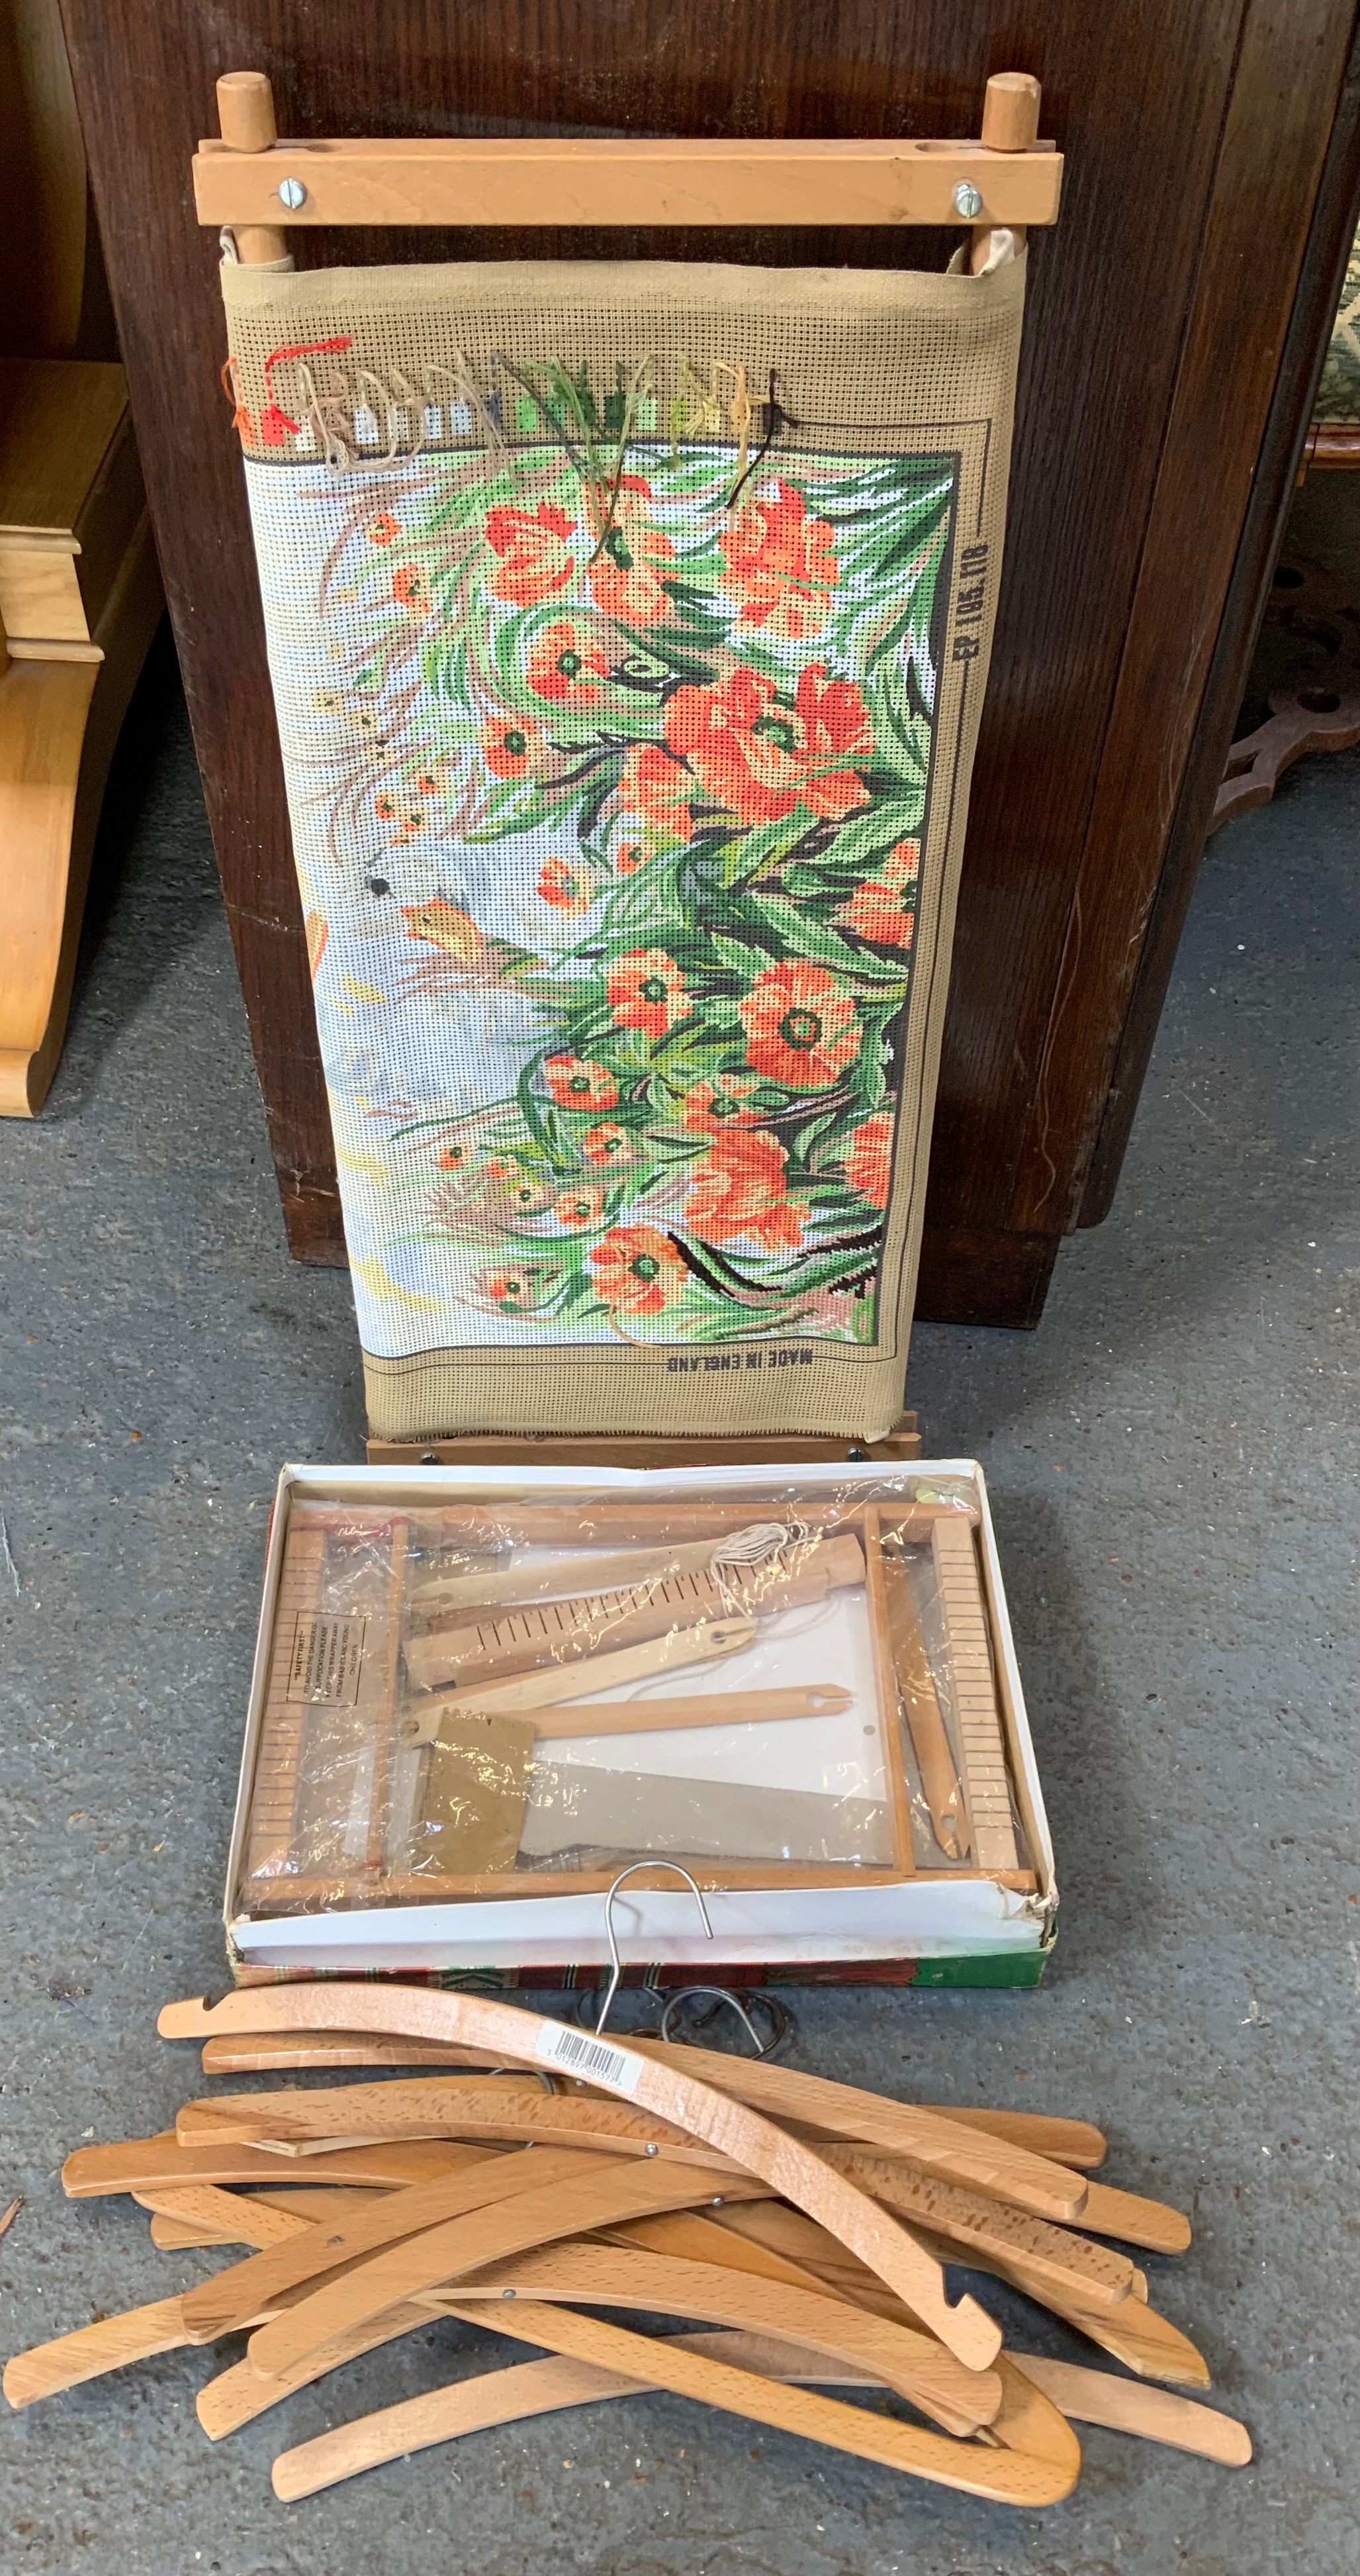 Tapestry Frame, Child's Loom and Wooden Coat Hangers